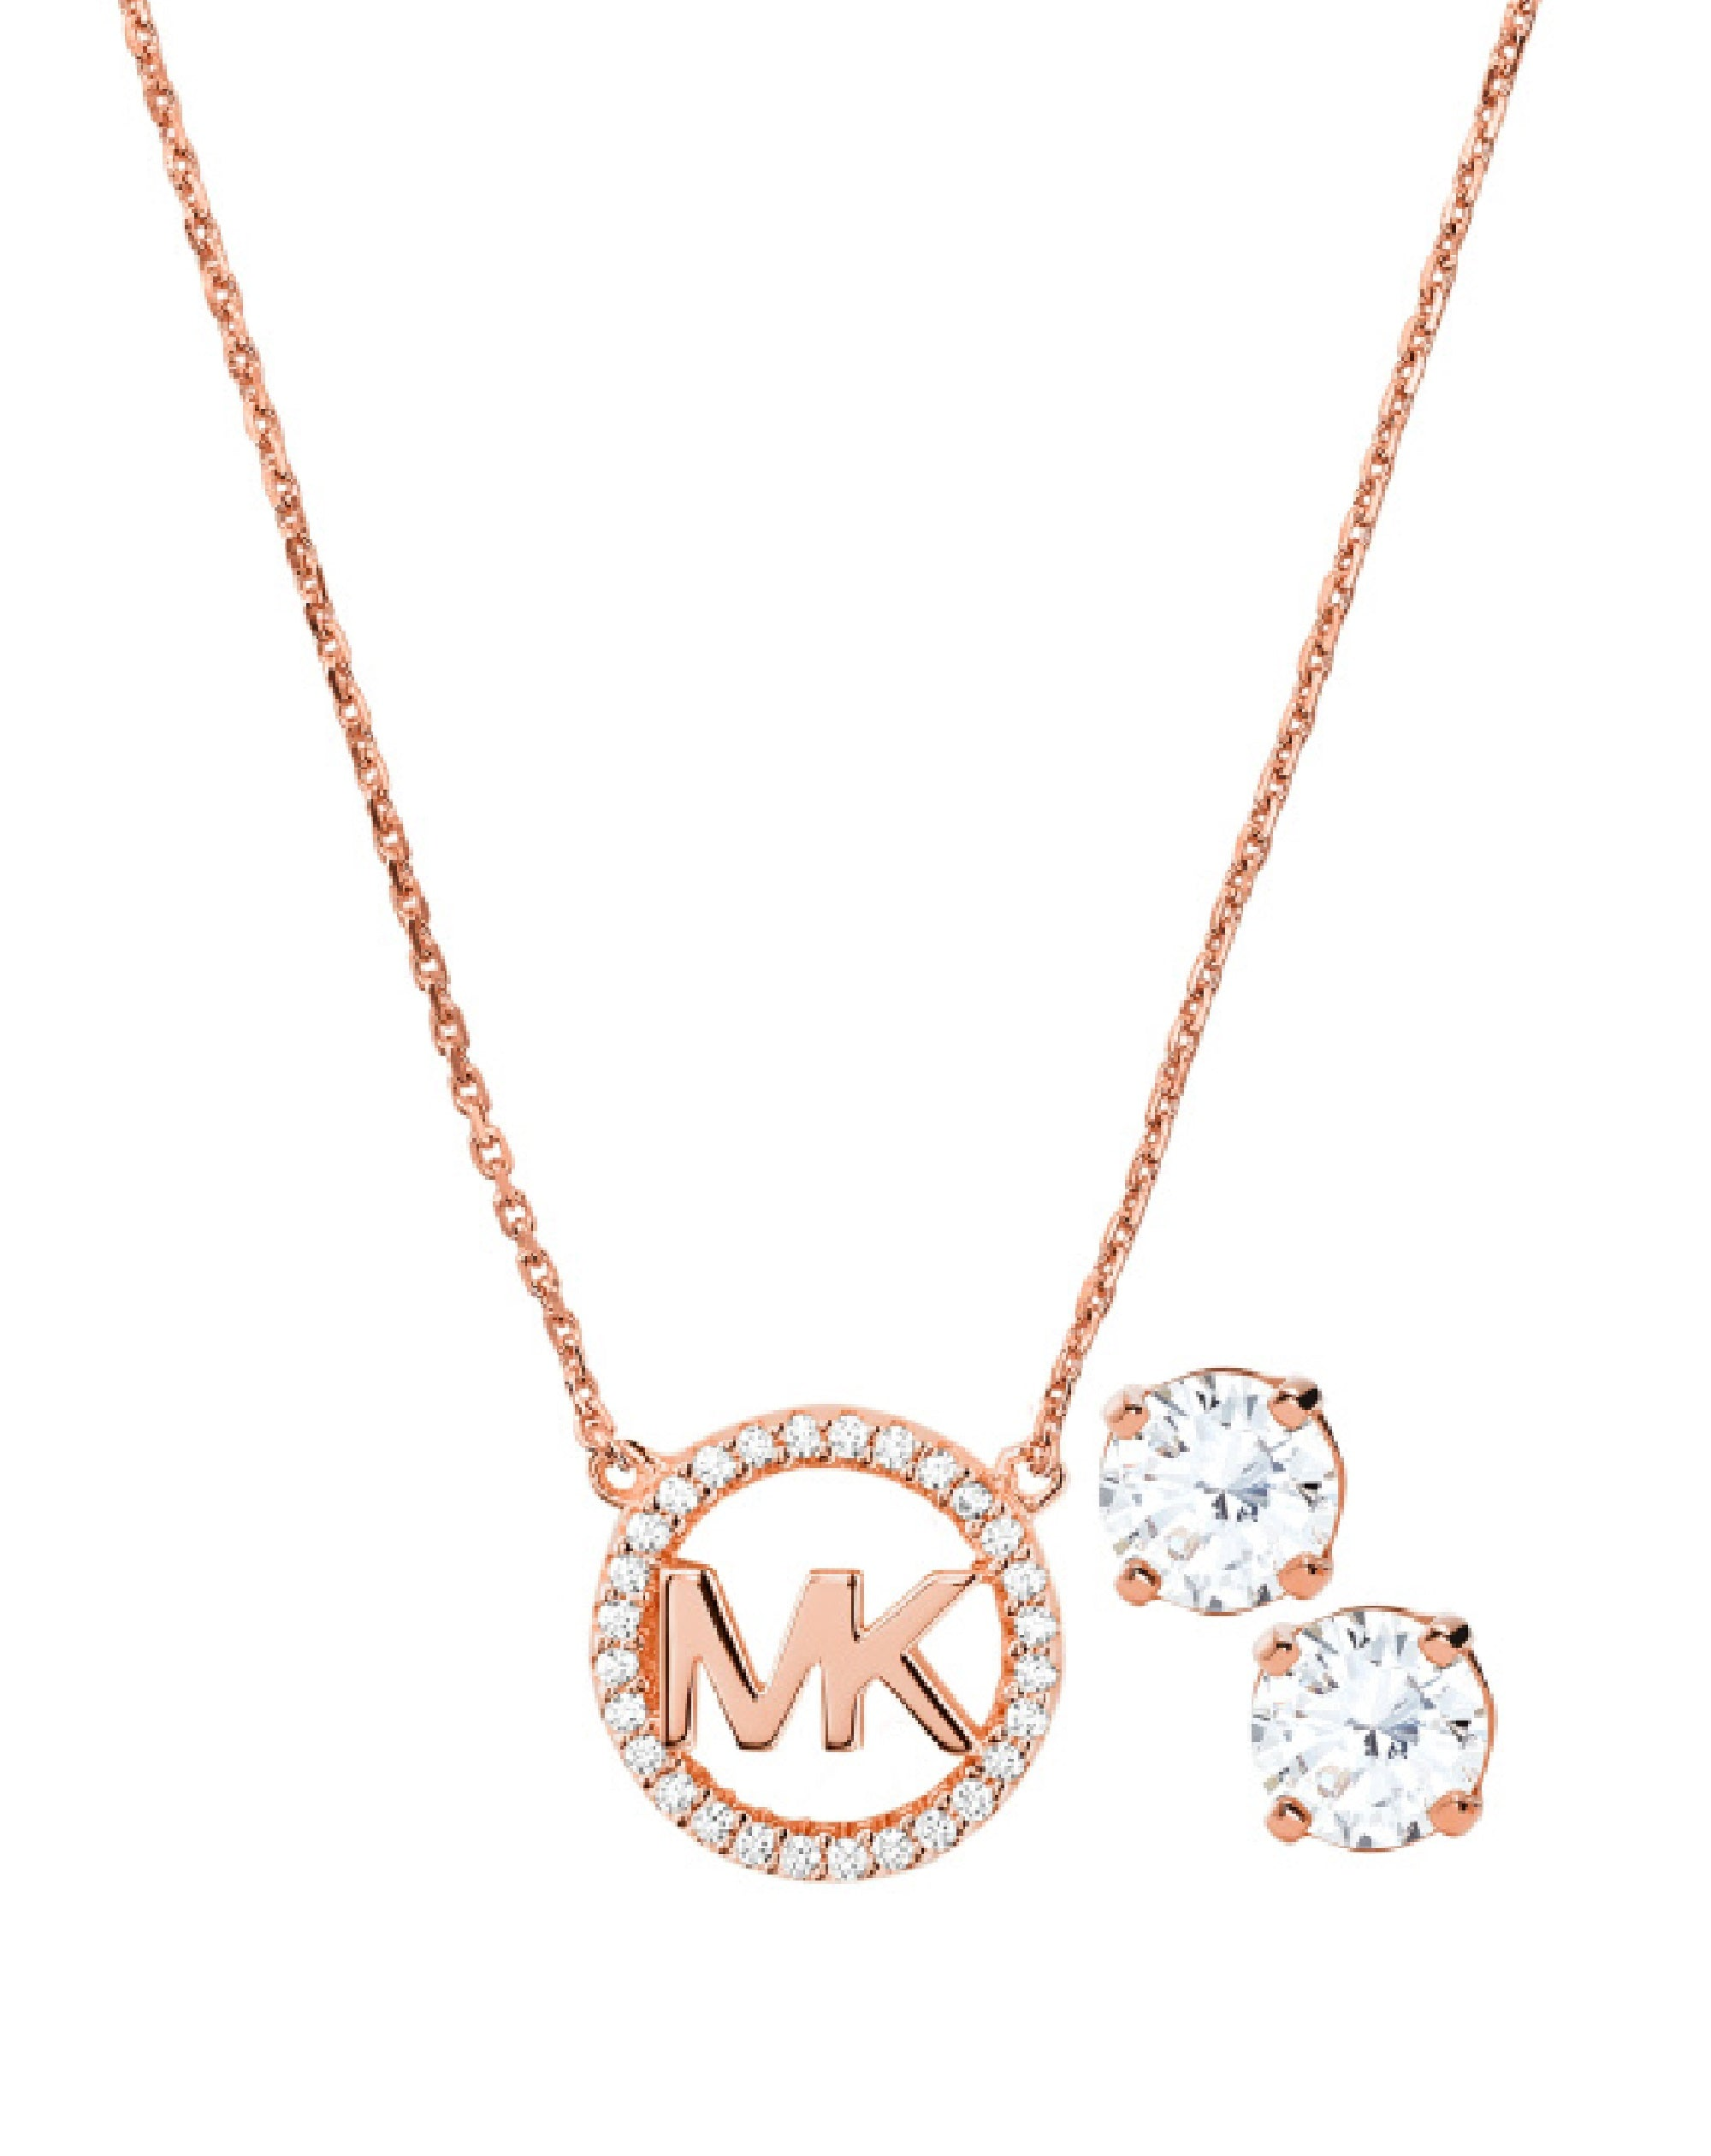 MKC1260AN791 MK Jewelry Full Set Necklace & Earings Rose Tone